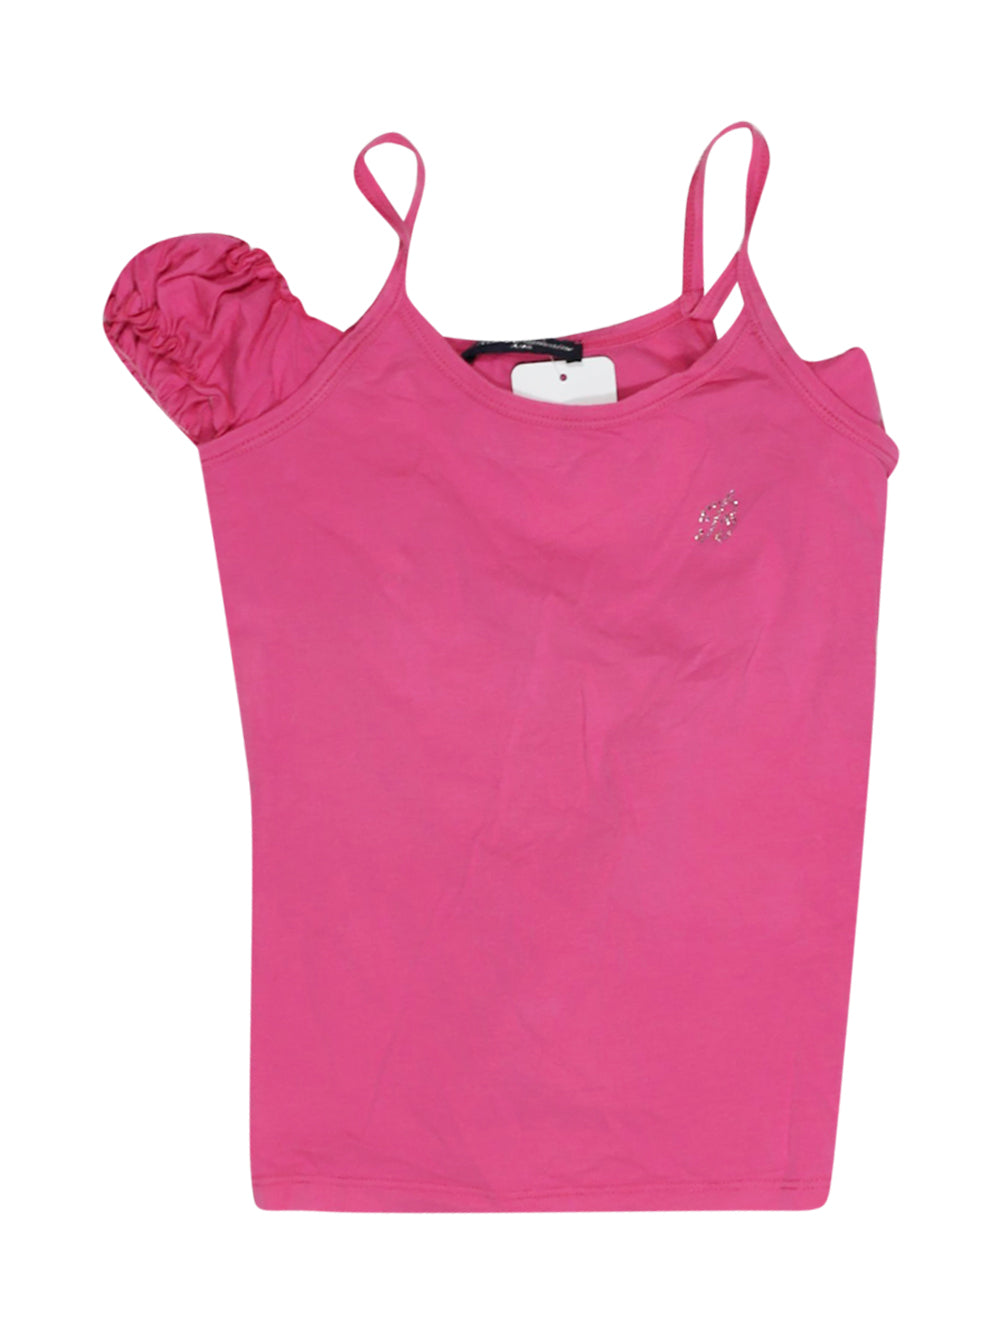 Front photo of Preloved Miss Blumarine Pink Girl's sleeveless top - size 9-10 yrs